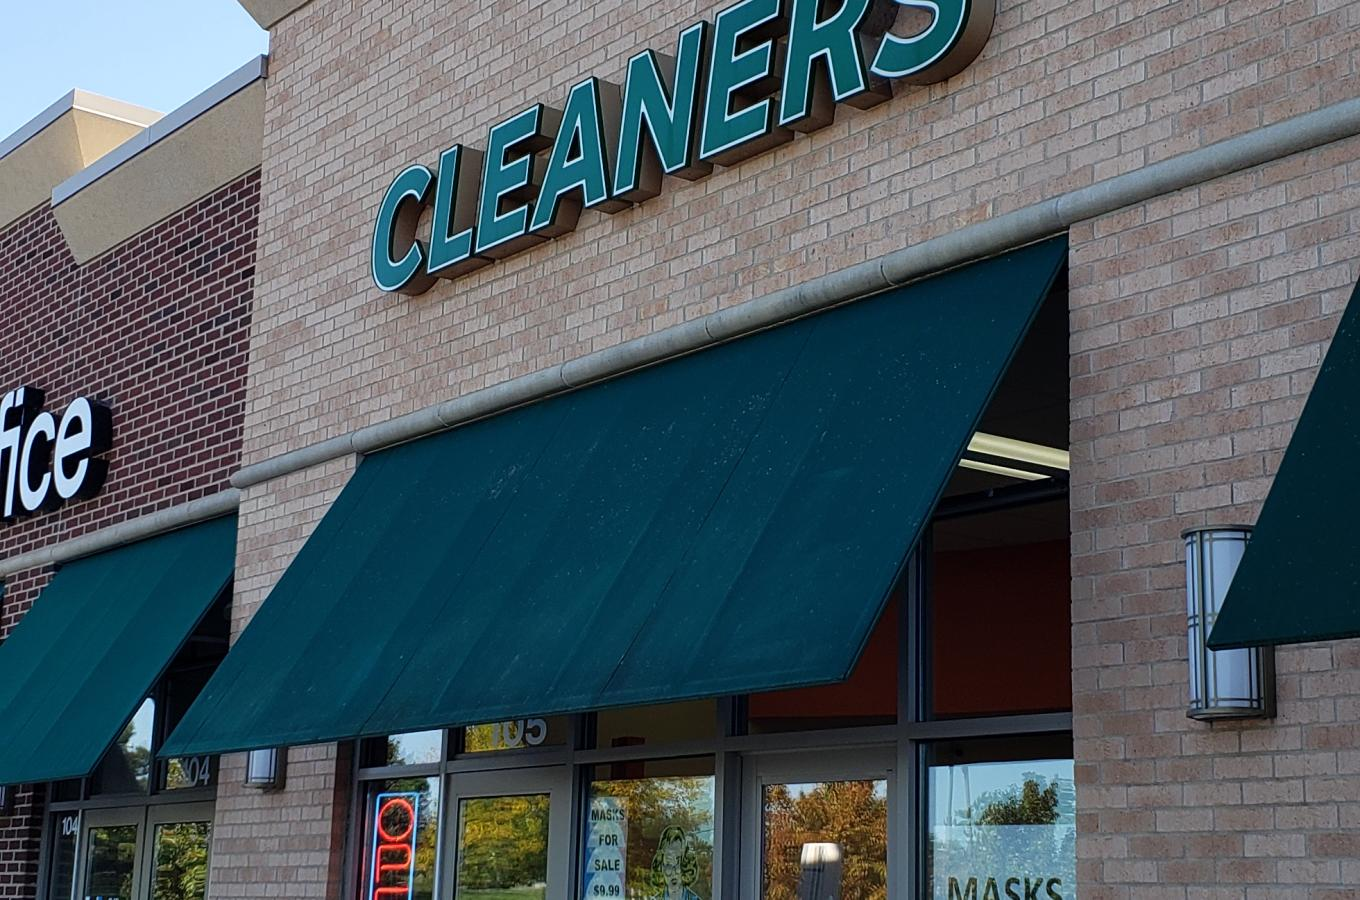 Press Time Cleaners Storefront